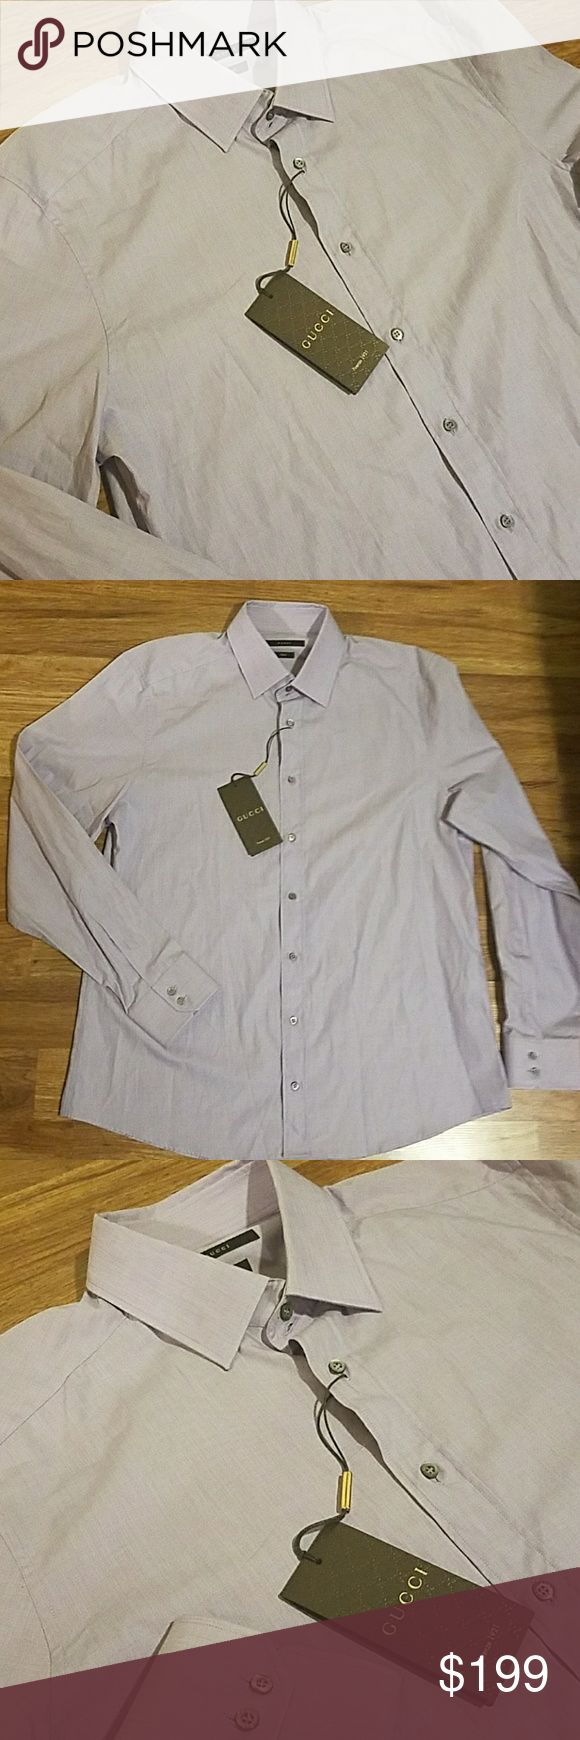 Gucci Fitted Slim Fit Lavender Purple Dress Shirt Gucci Fitted (tagged fitted) Slim Fit Mother of pearl buttons with Gucci insignia on each button Lavender Purple Made in Italy Condition Brand New With Tags msrp $295 size 17/43 tagged sleeves 32/33 Gucci Shirts Dress Shirts